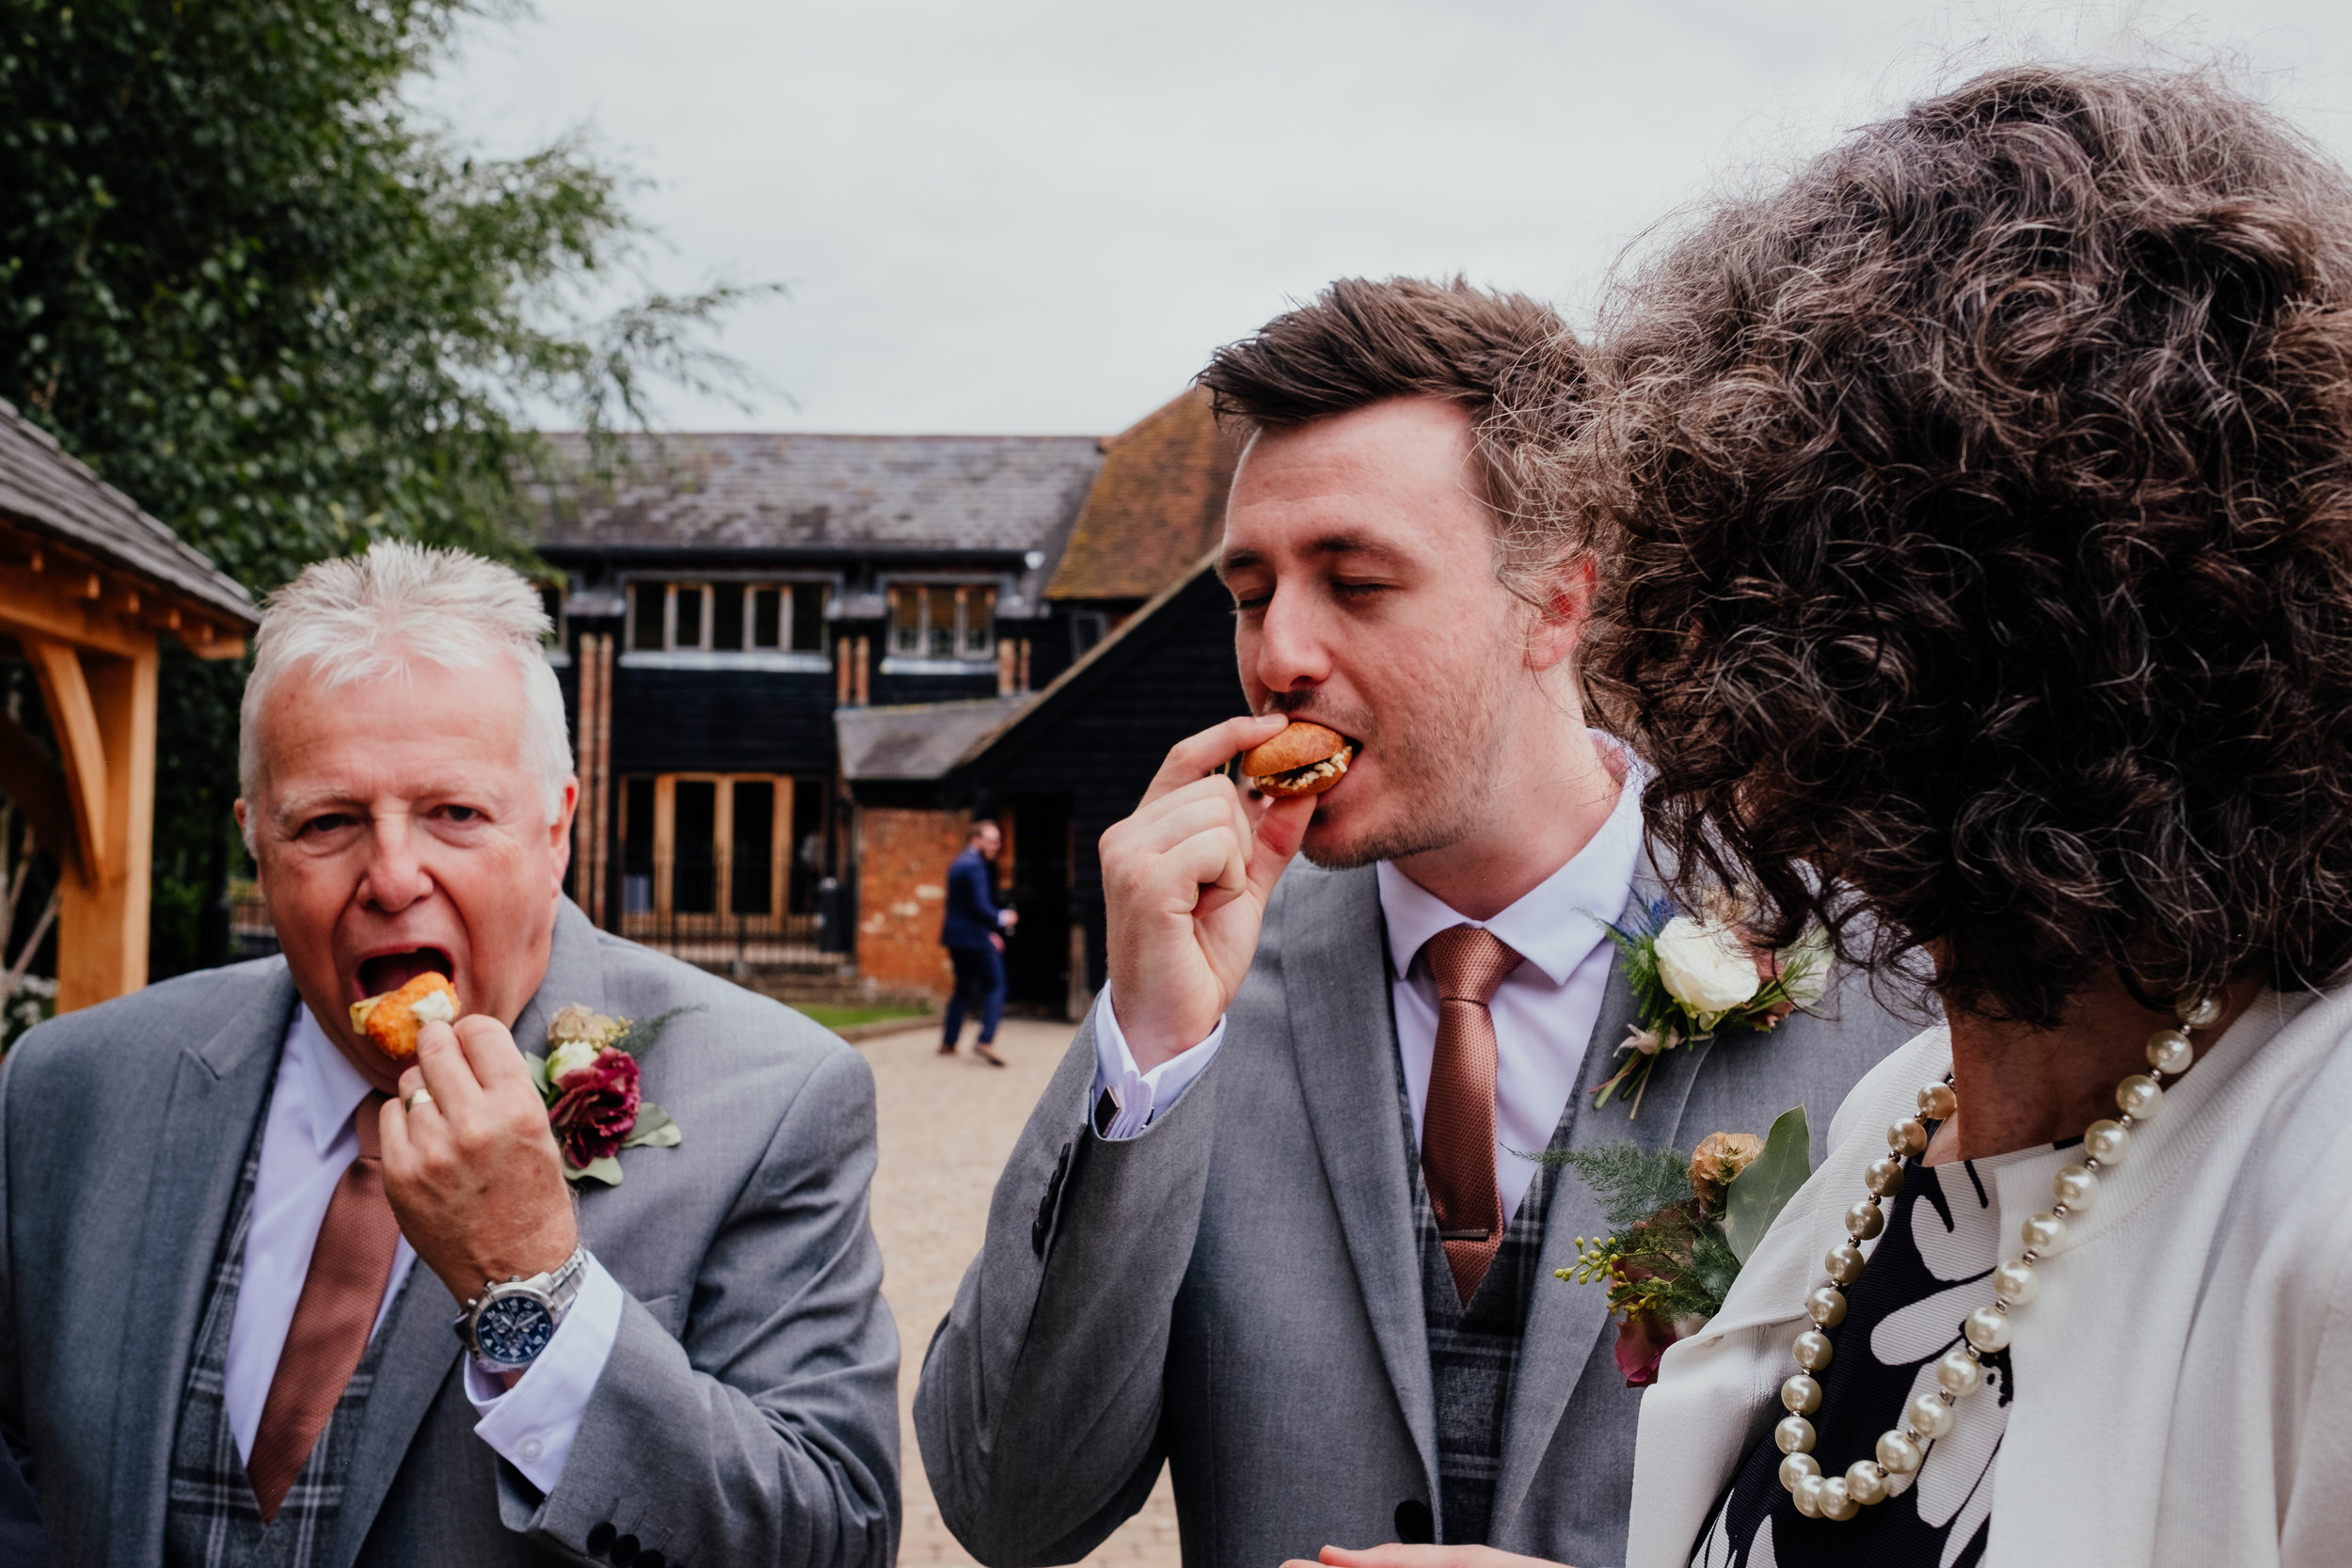 Groom and Father of the Bride eat canapés